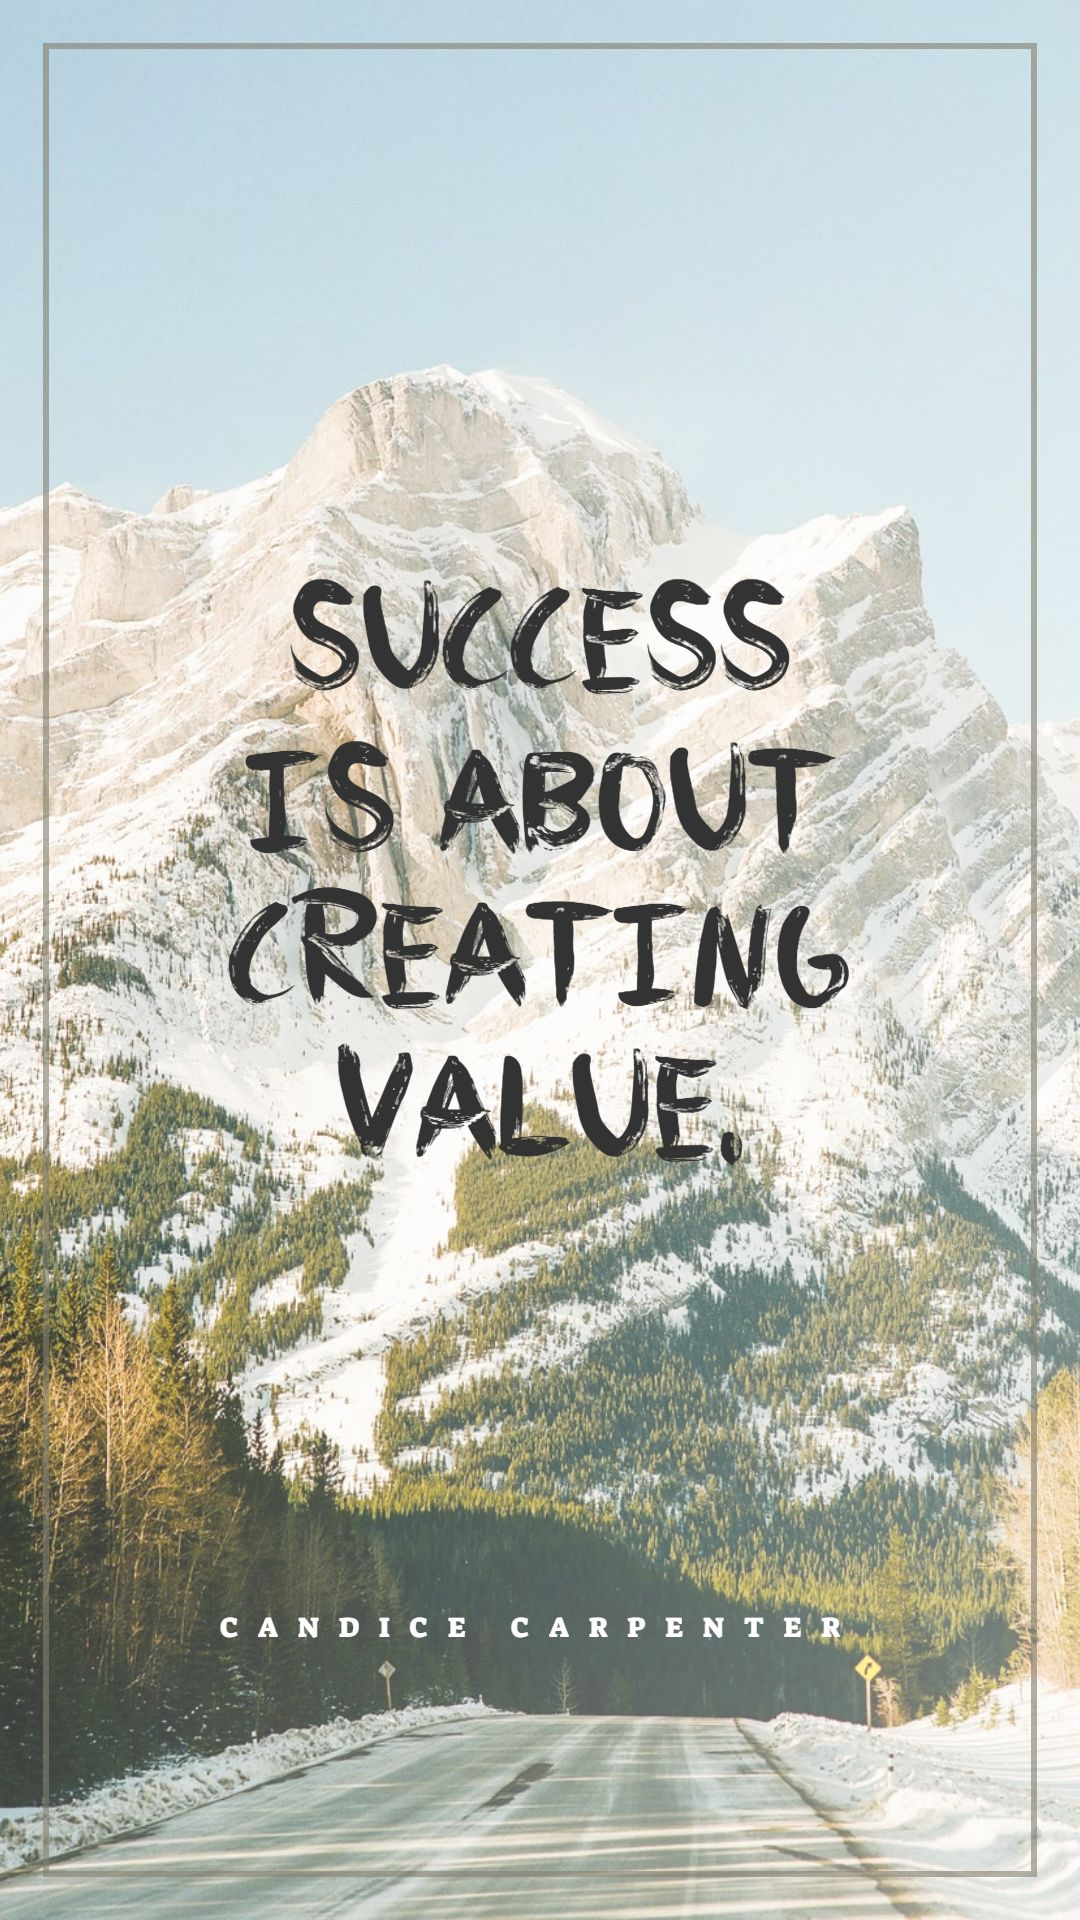 Quotes image of Success is about creating value.